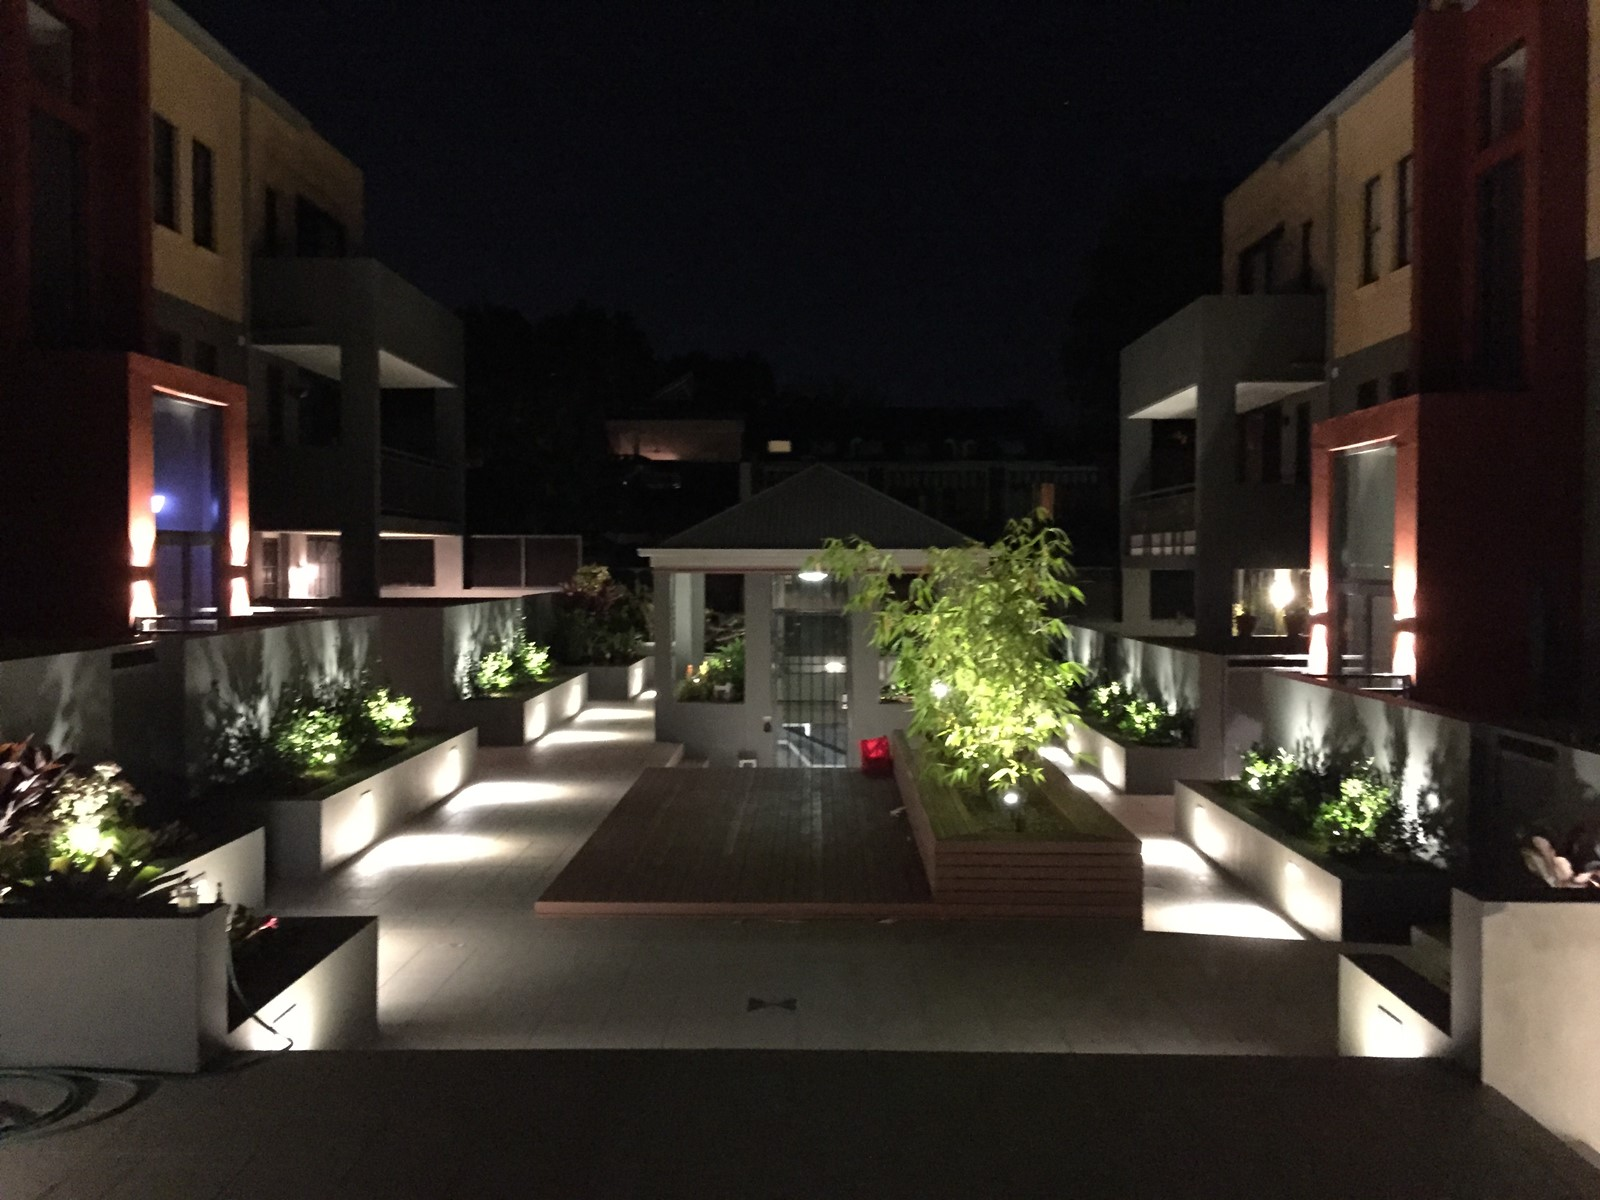 Garden lighting at night